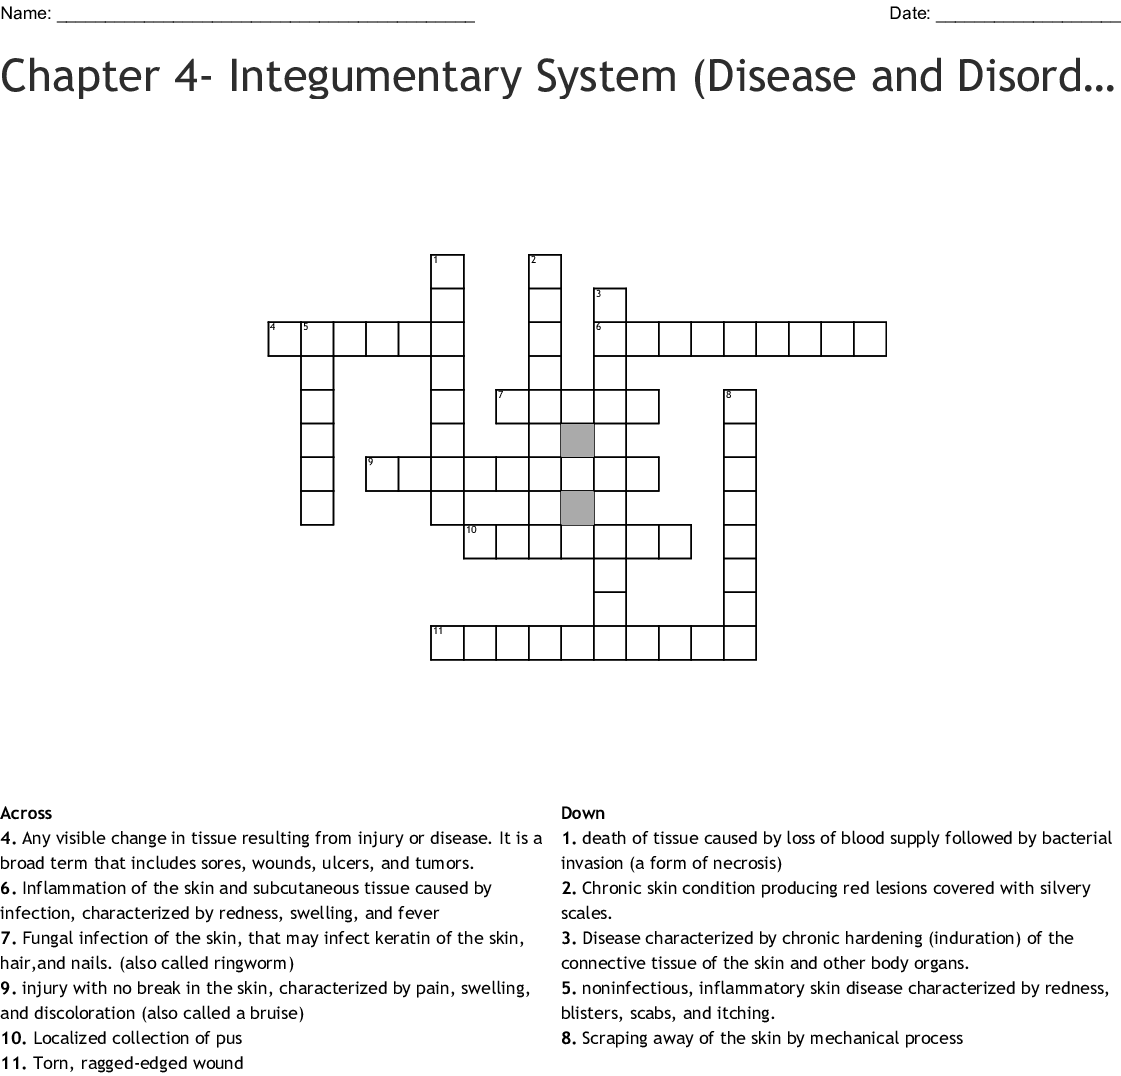 Chapter 5 Integumentary System Worksheet